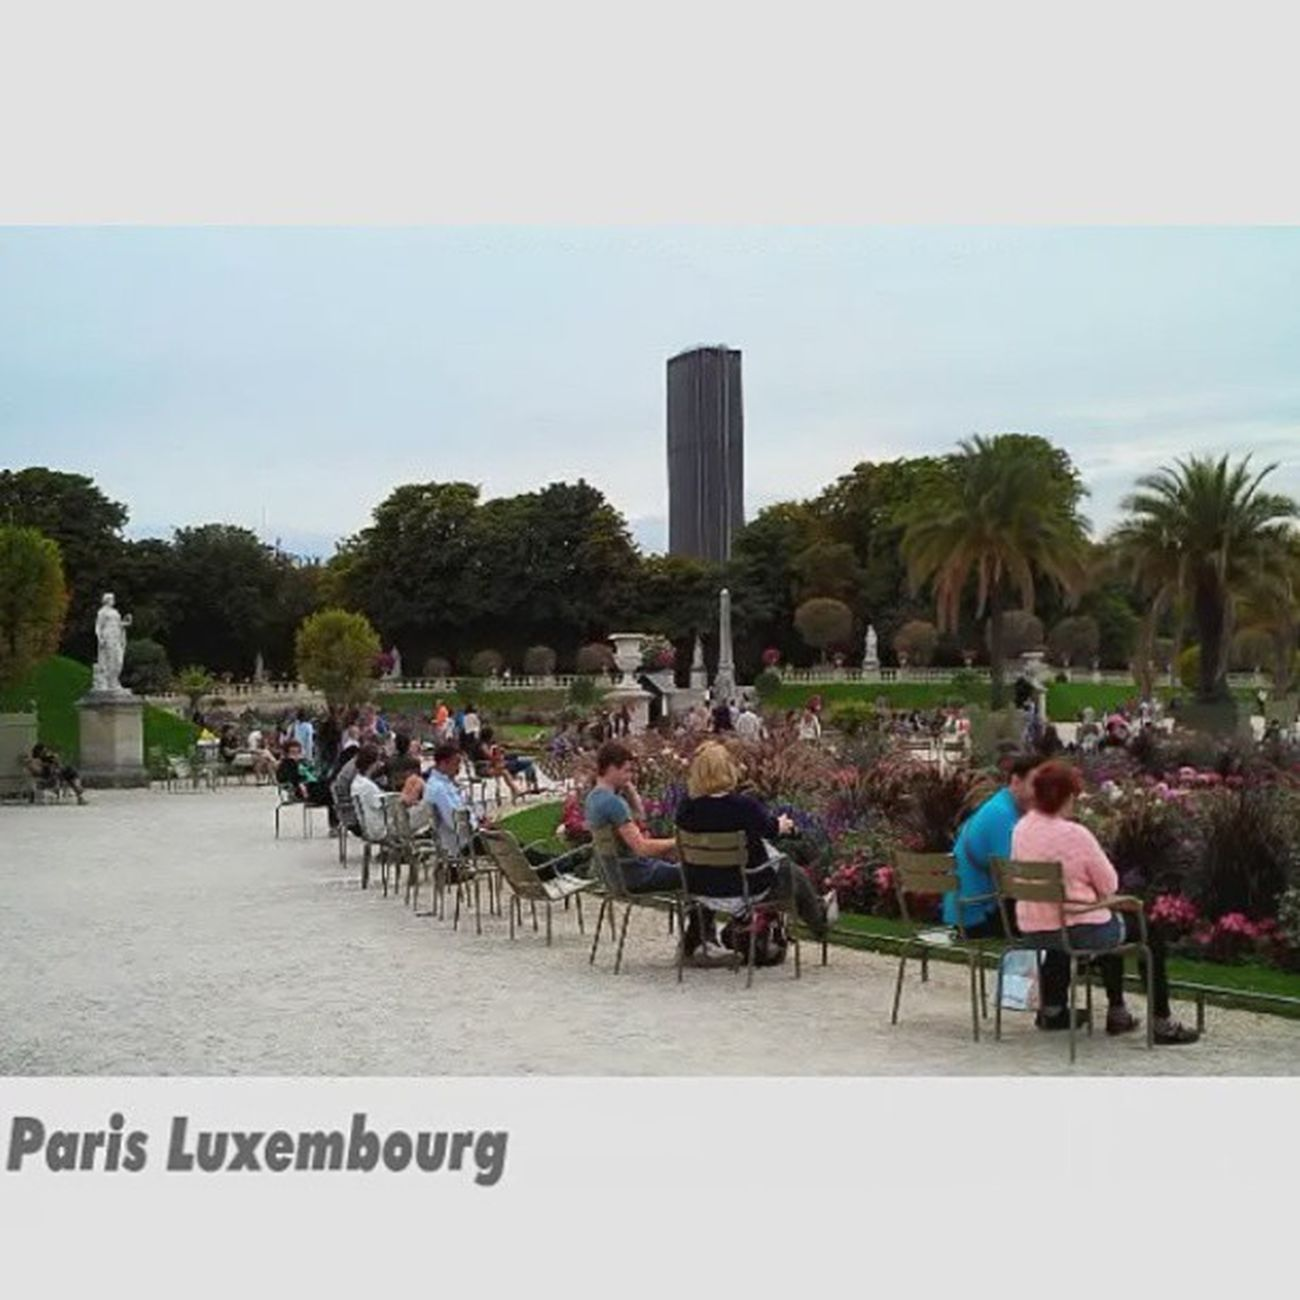 #Paris #jardinduluxembourg Perfectvideo Myfirstvideo Paris Videogramoftheday Videoclip Insta_pick_video Igersfrance Gi_video Igersparis Hubvideo Wec_ig Global_views_videoshot Videoinstagram Jj_video Videogram Ministory Igvideo Clubsocial_video Instavideo Jardinduluxembourg Jj_daily Whateyecee_ig Igersfrancevideo Worldvideos Insta_globalvideo Tribegram_video